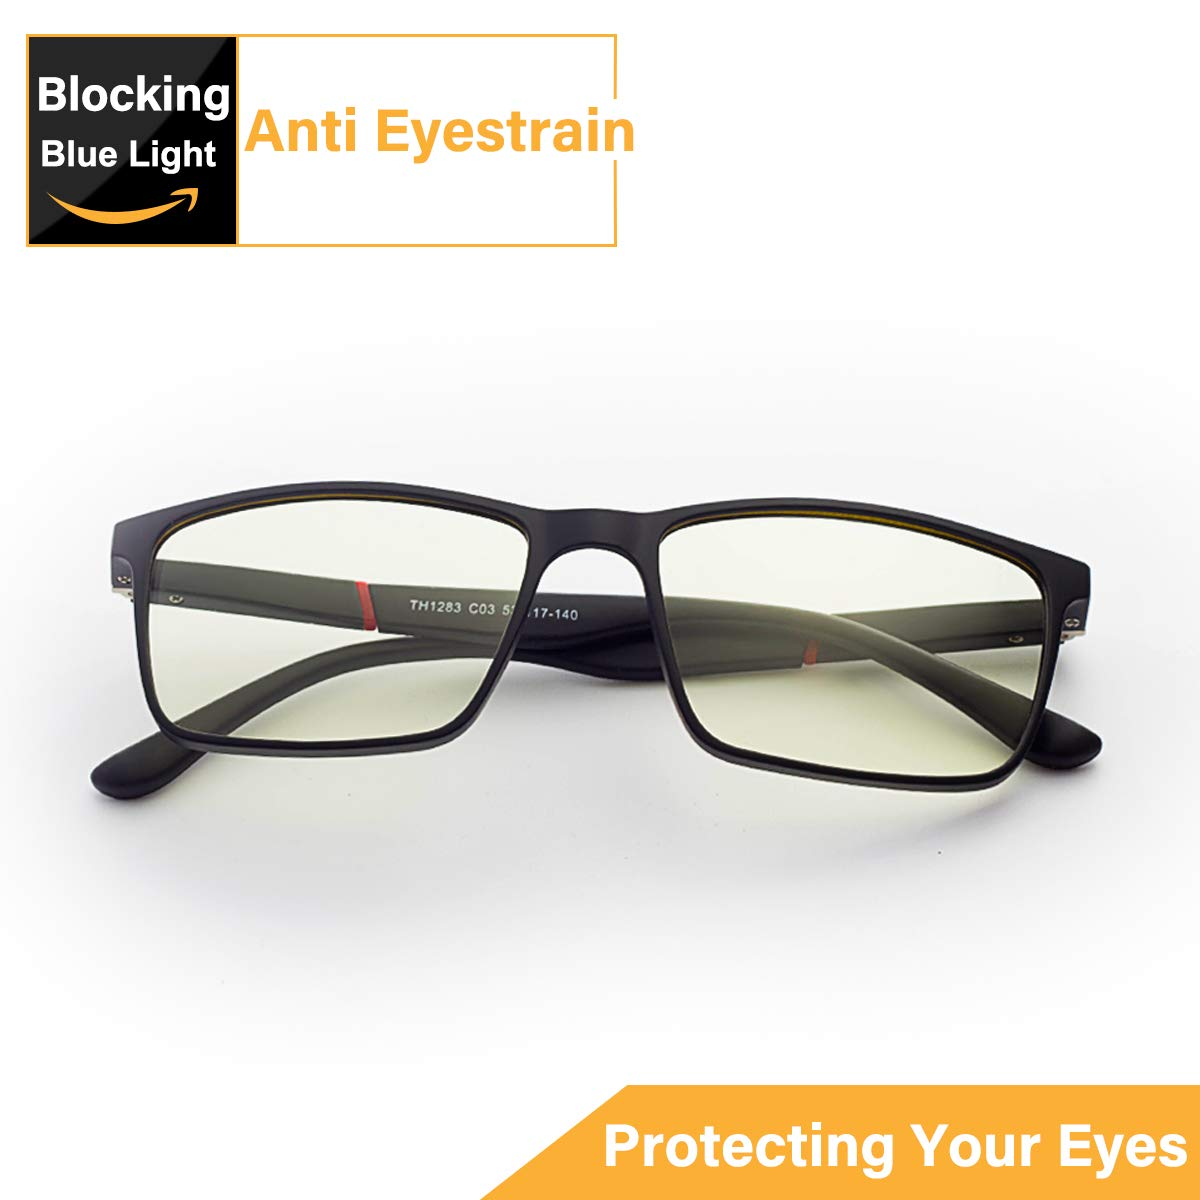 Blue Light Blocking Glasses,Computer Glasses,JACNITAD Anti Glare, Relieve Eyes Fatigue, Blocking Headaches, Premium Gamer & Computer & Reading Eye-wear, Anti Blue Light Lenses for Men & Women